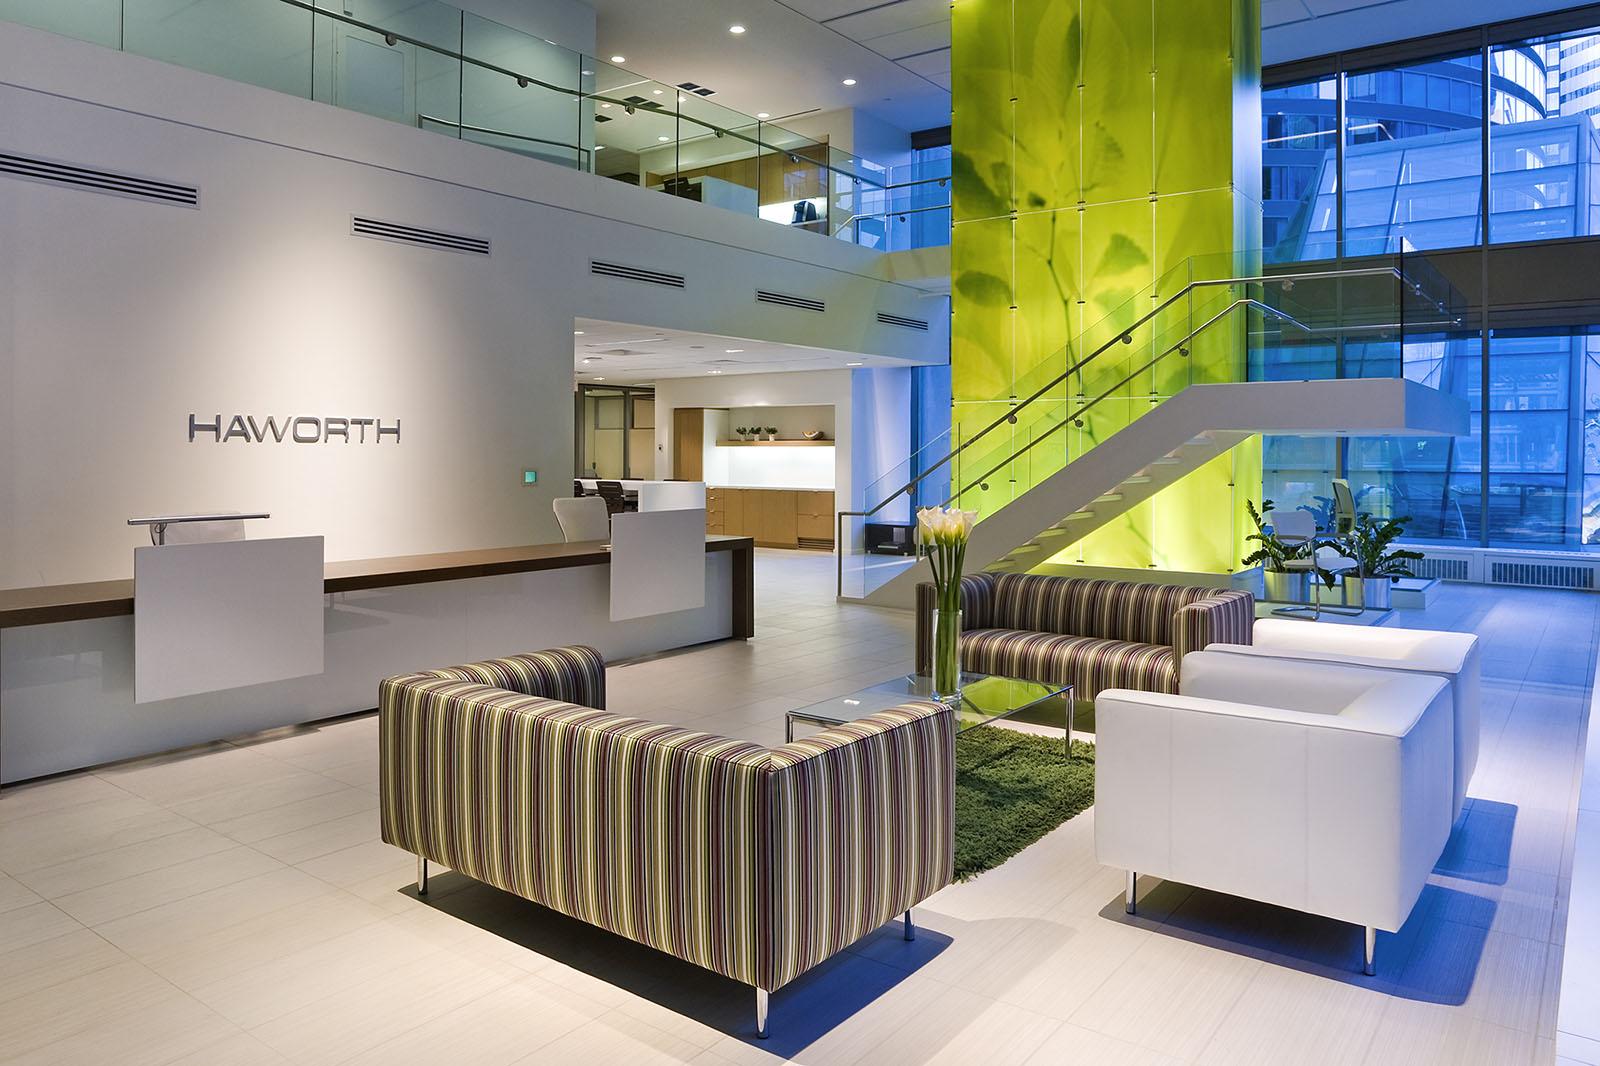 Haworth office furniture showroom, Toronto, Ontario